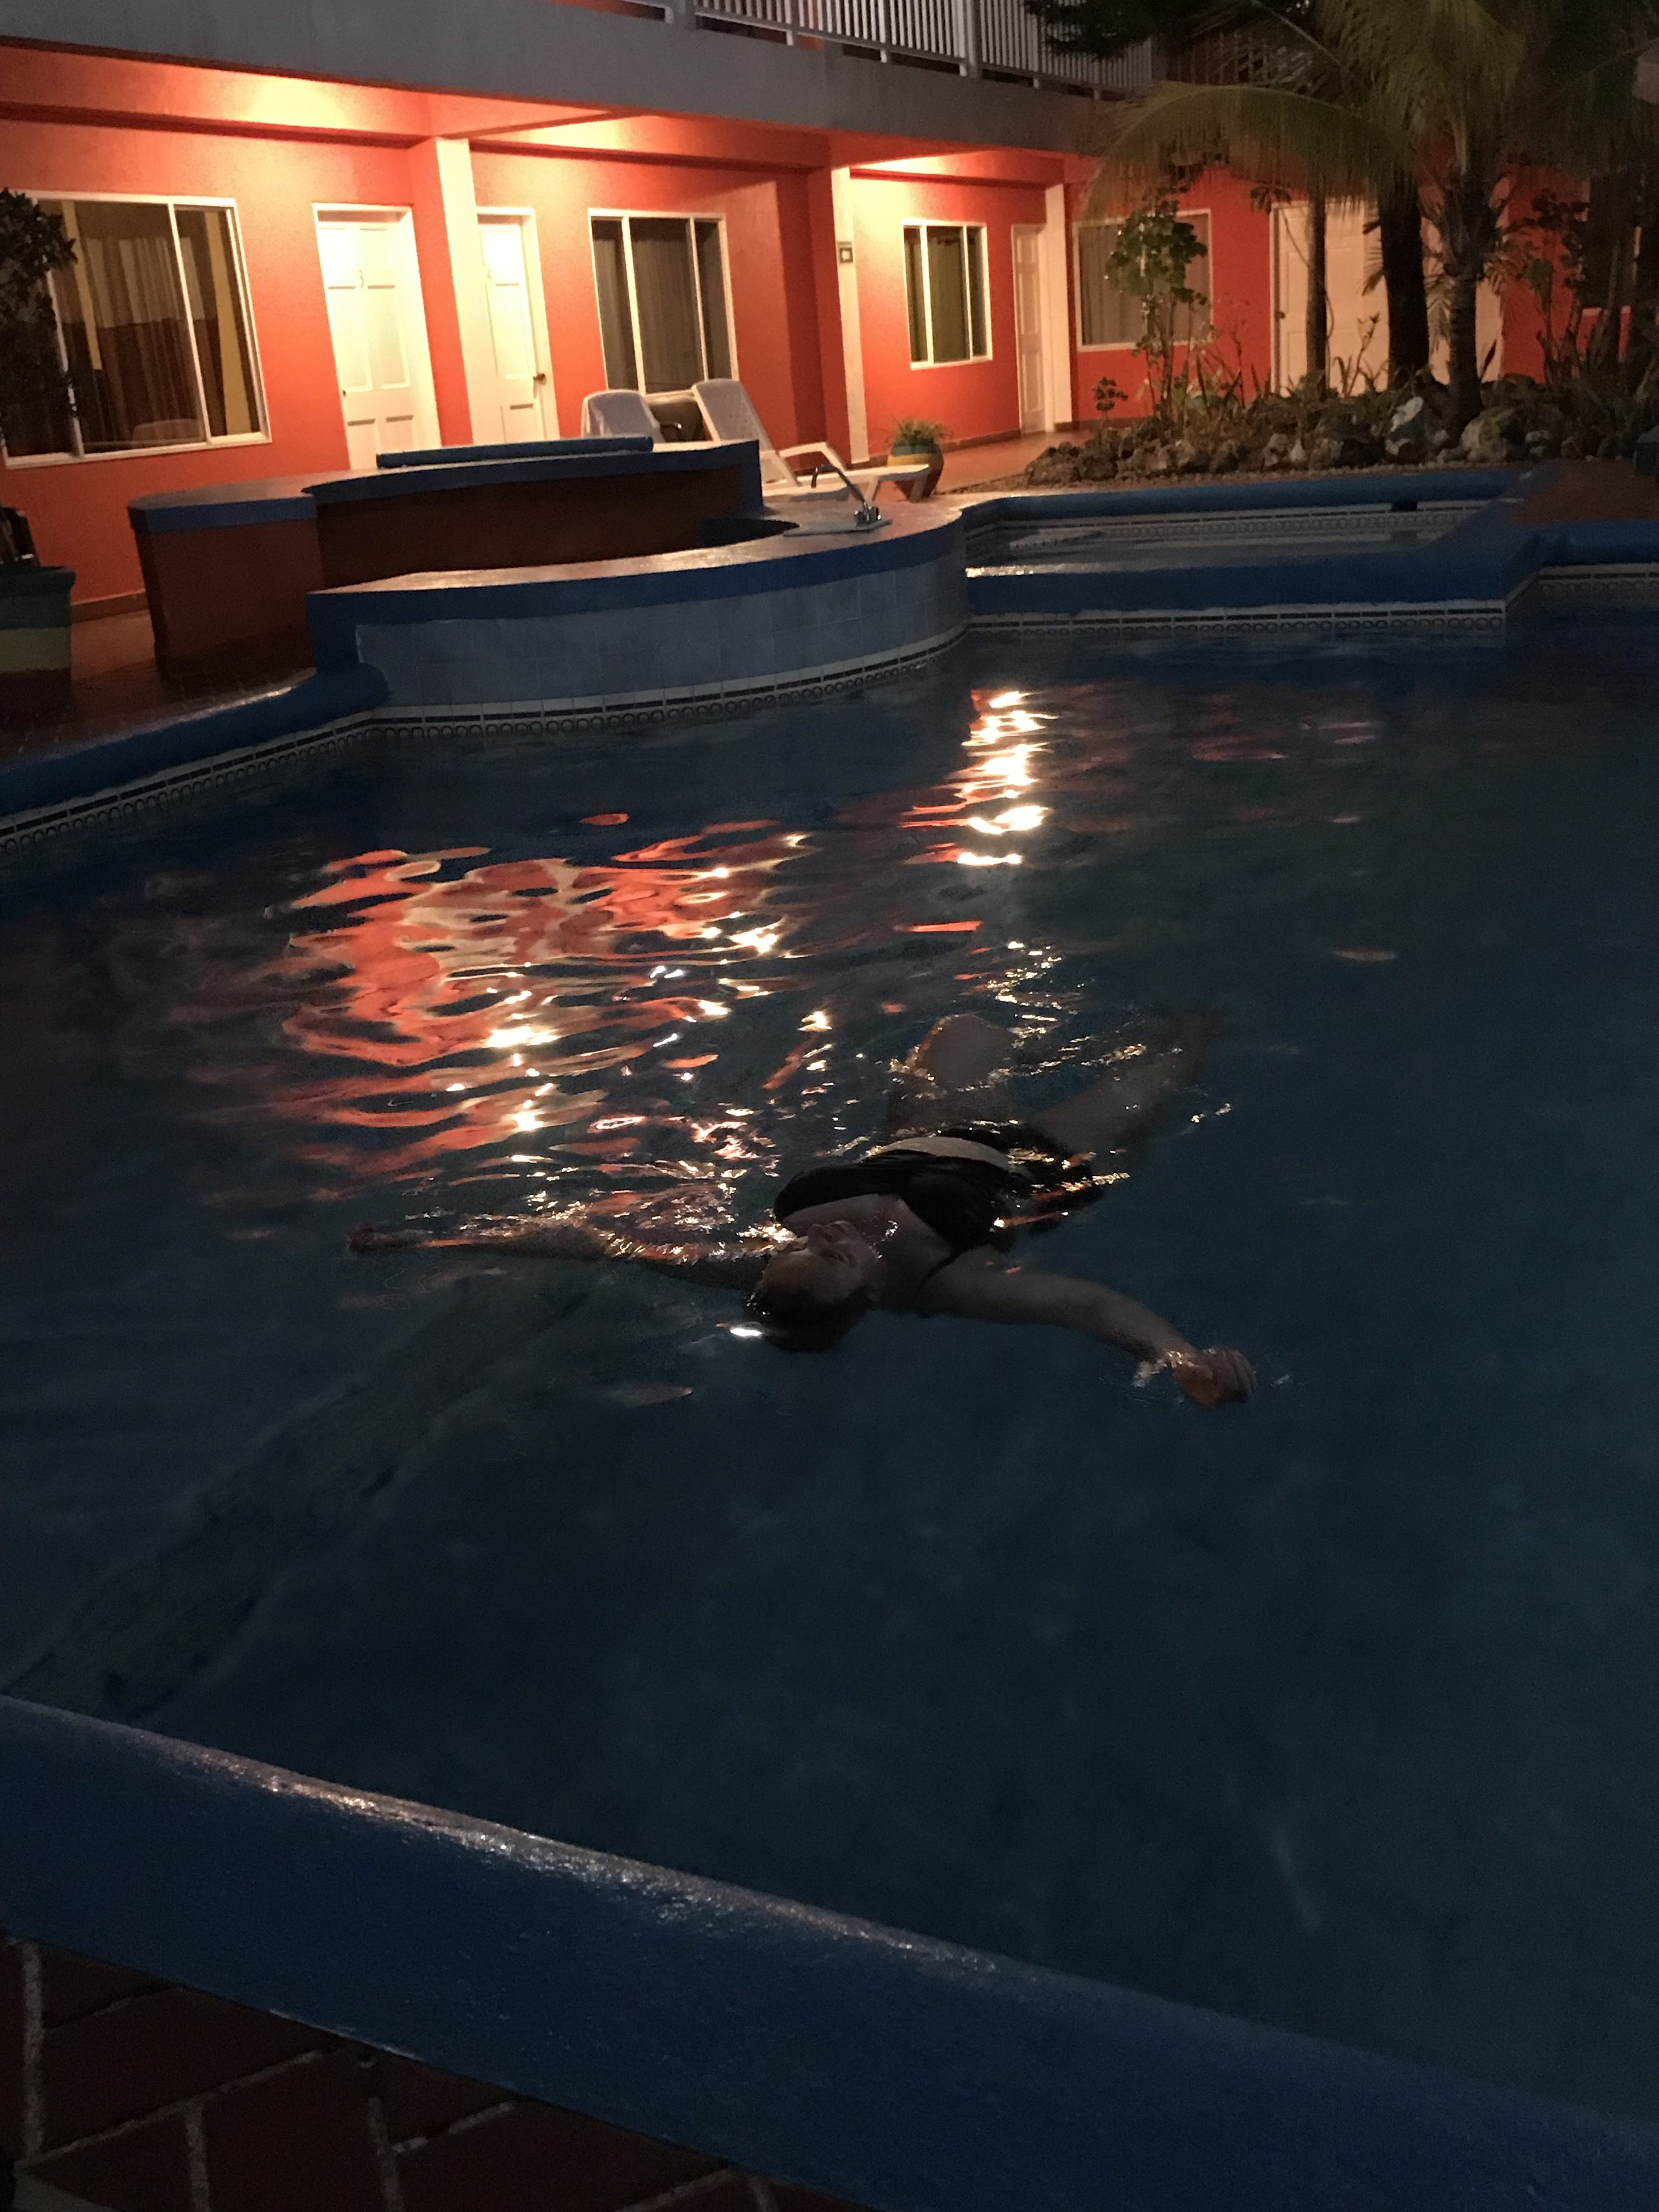 Dark night with lights on pool and someone swimming